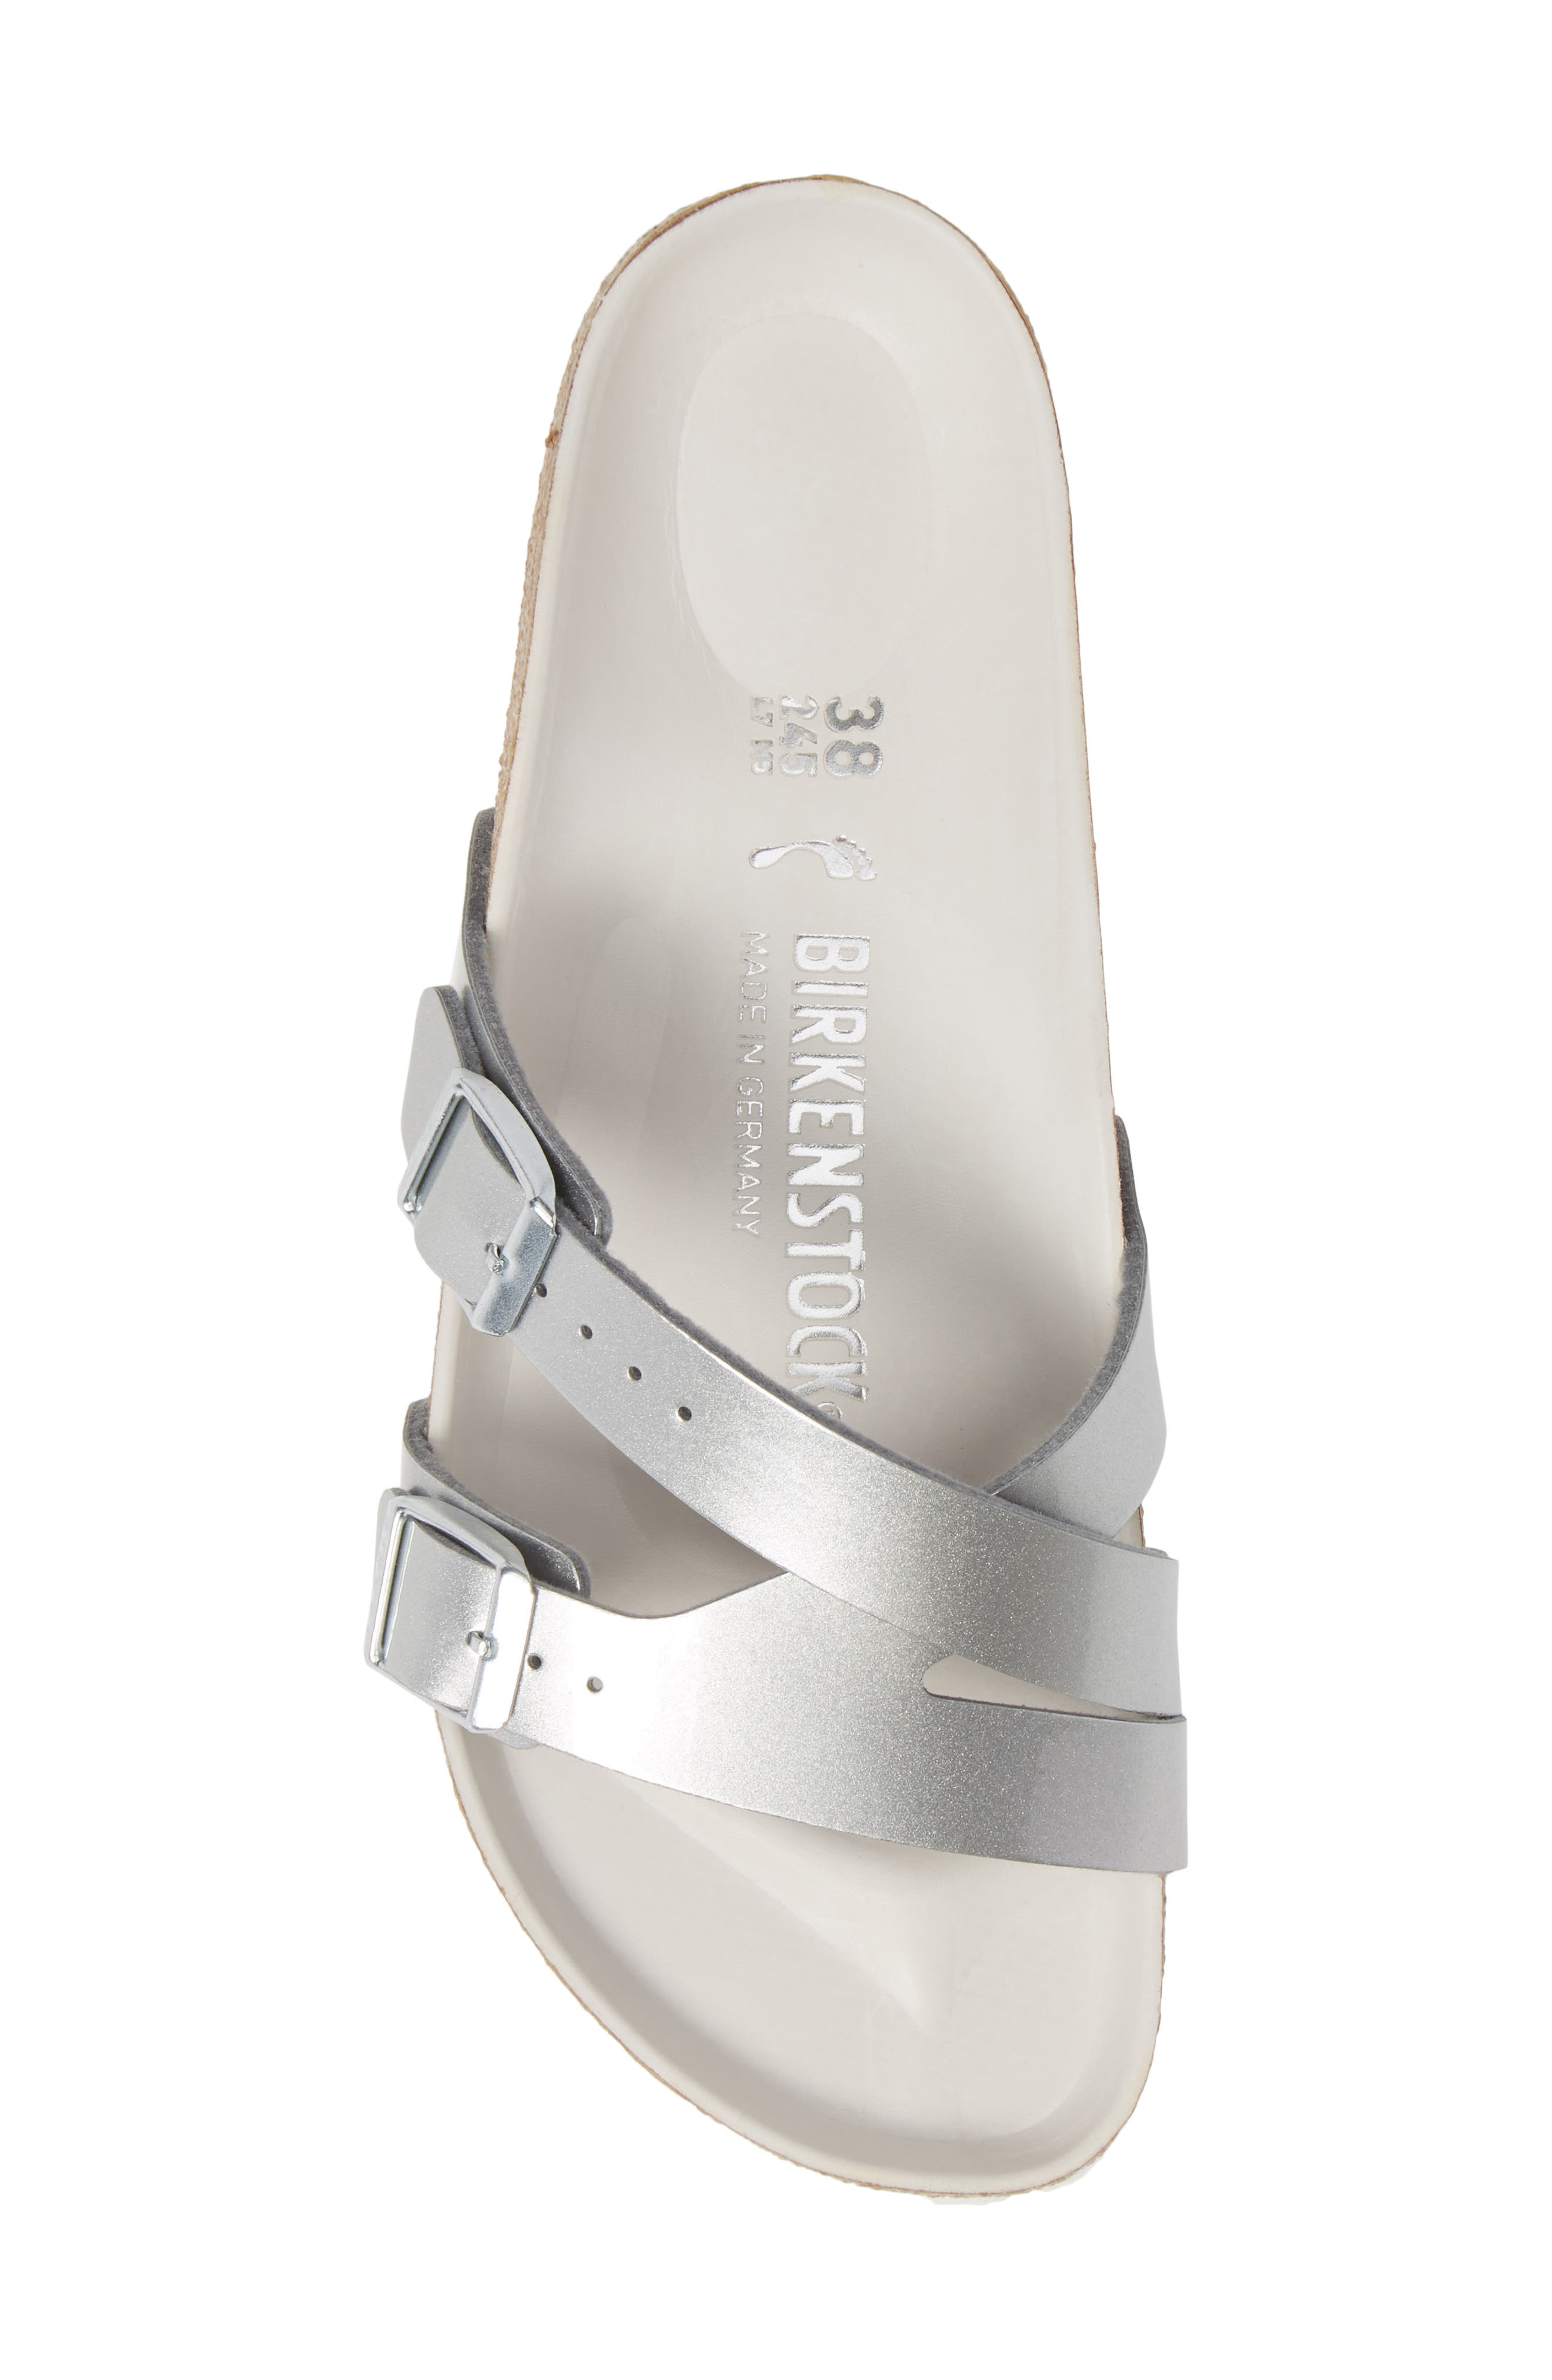 BIRKENSTOCK,                             Yao Metallic Slide Sandal,                             Alternate thumbnail 5, color,                             METALLIC SILVER